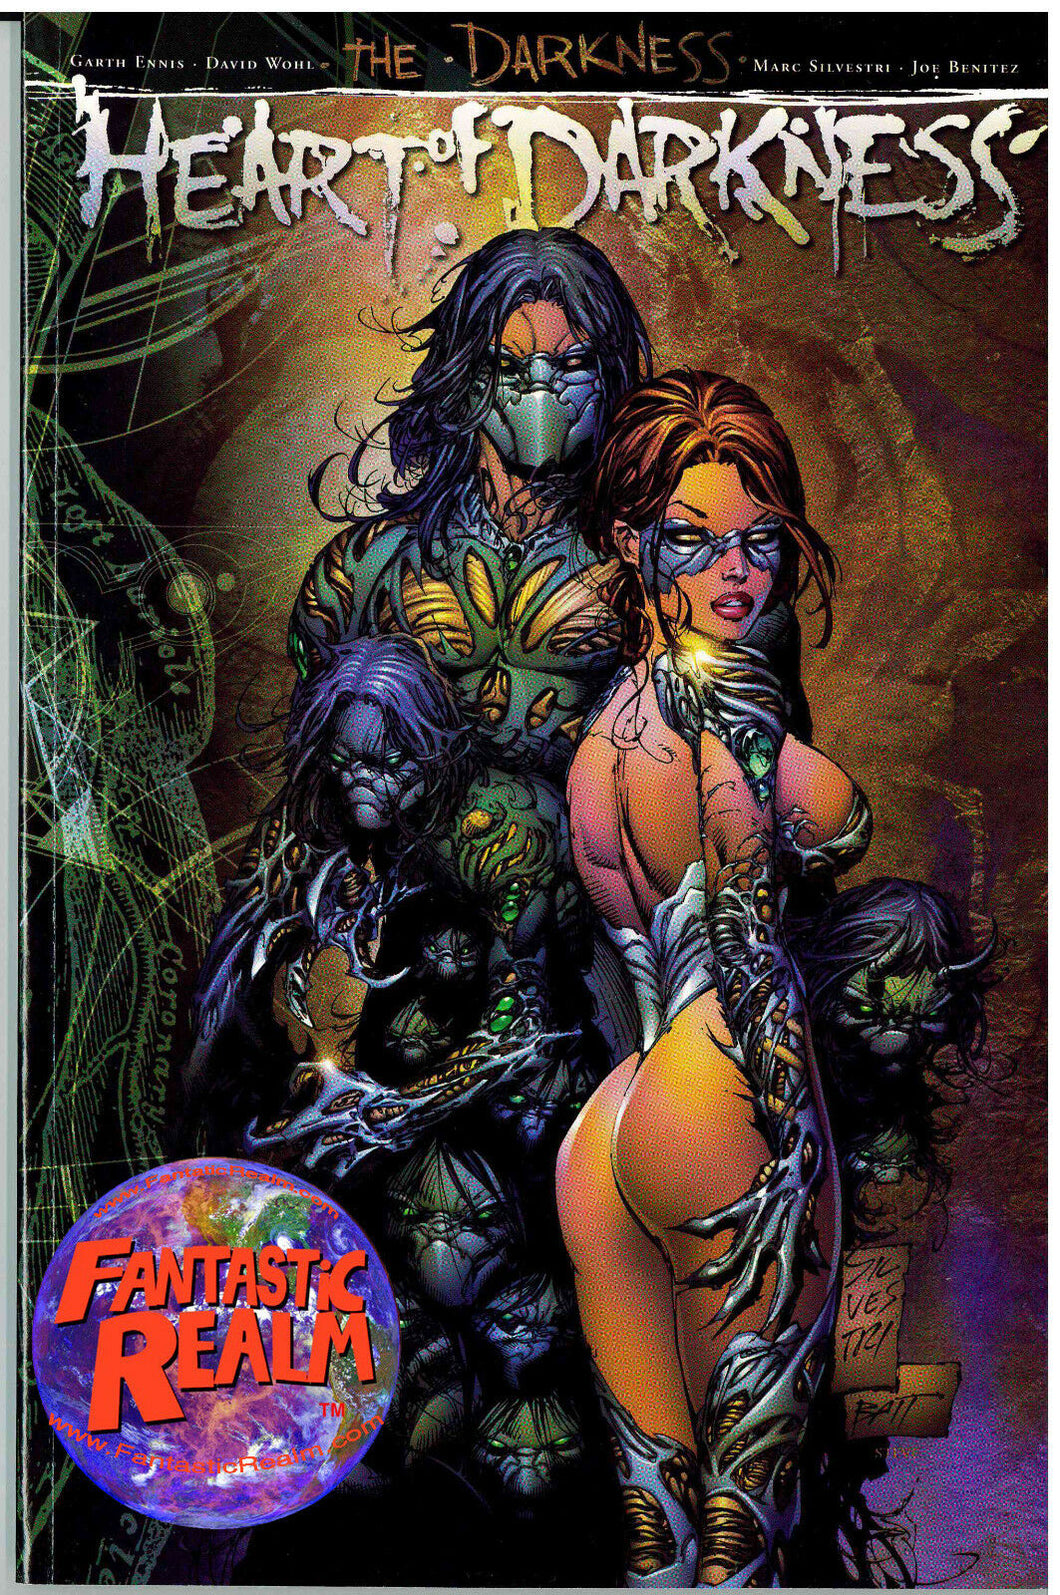 THE DARKNESS: HEART OF DARKNESS TOP COW UNIVERSE TPB GRAPHIC NOVEL